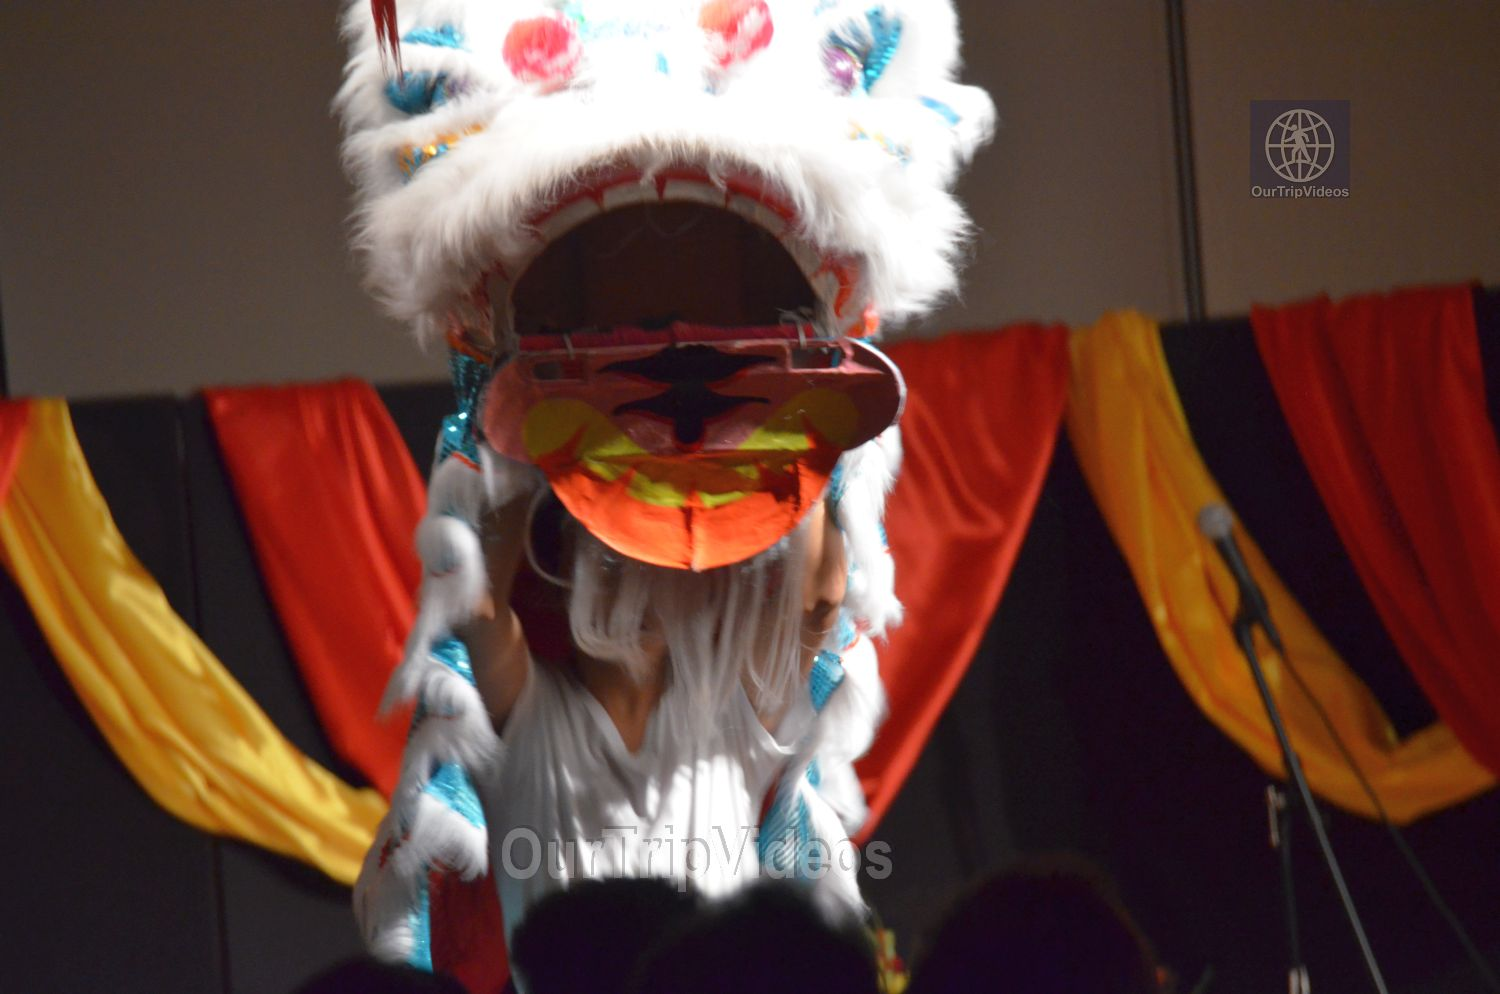 Chinese Lunar New Year Celebration, Milpitas, CA, USA - Picture 20 of 25